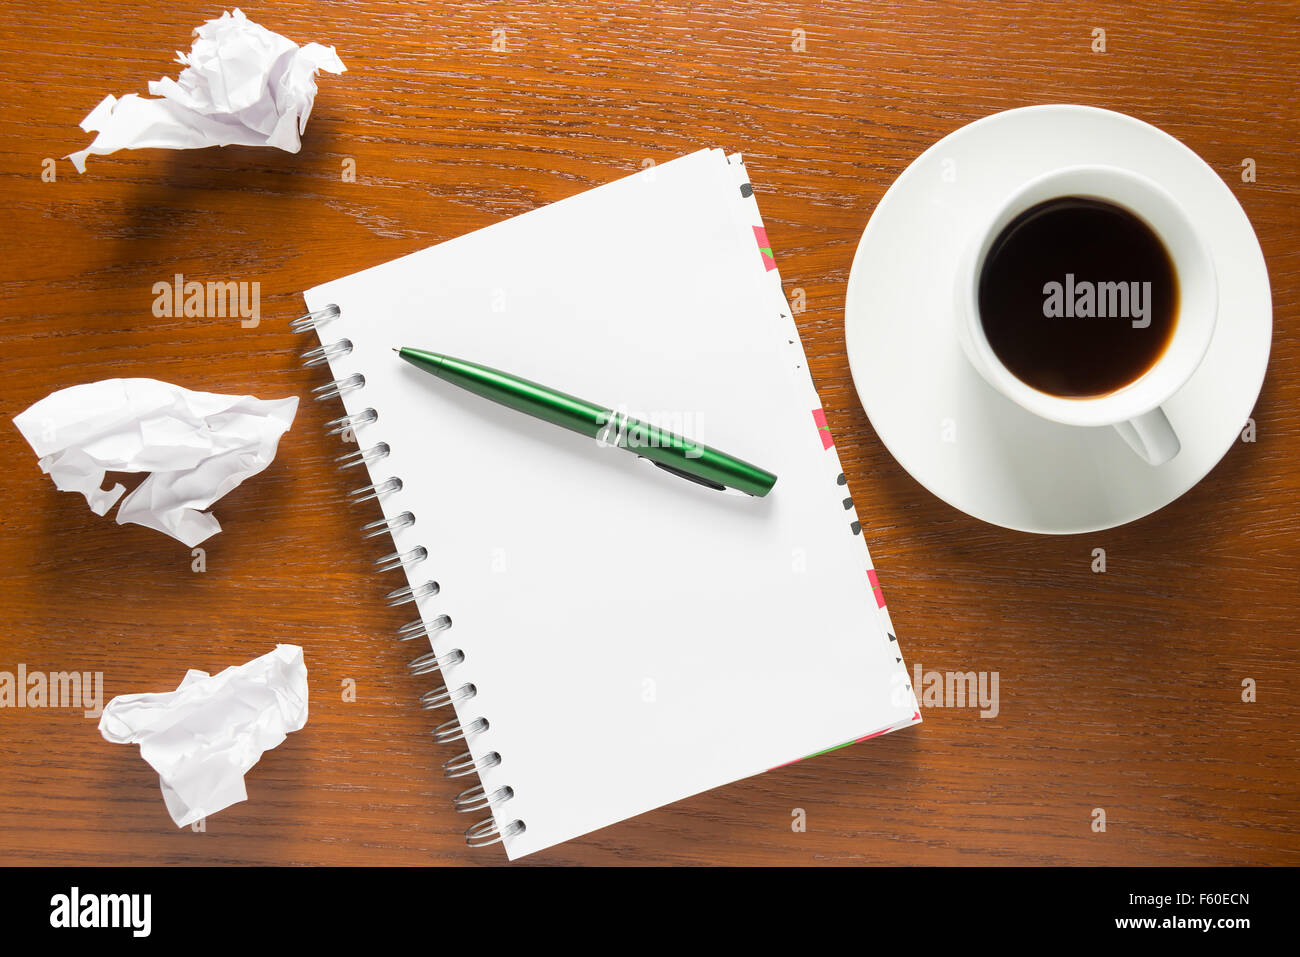 notebook and crumpled sheets of paper on top of view - Stock Image